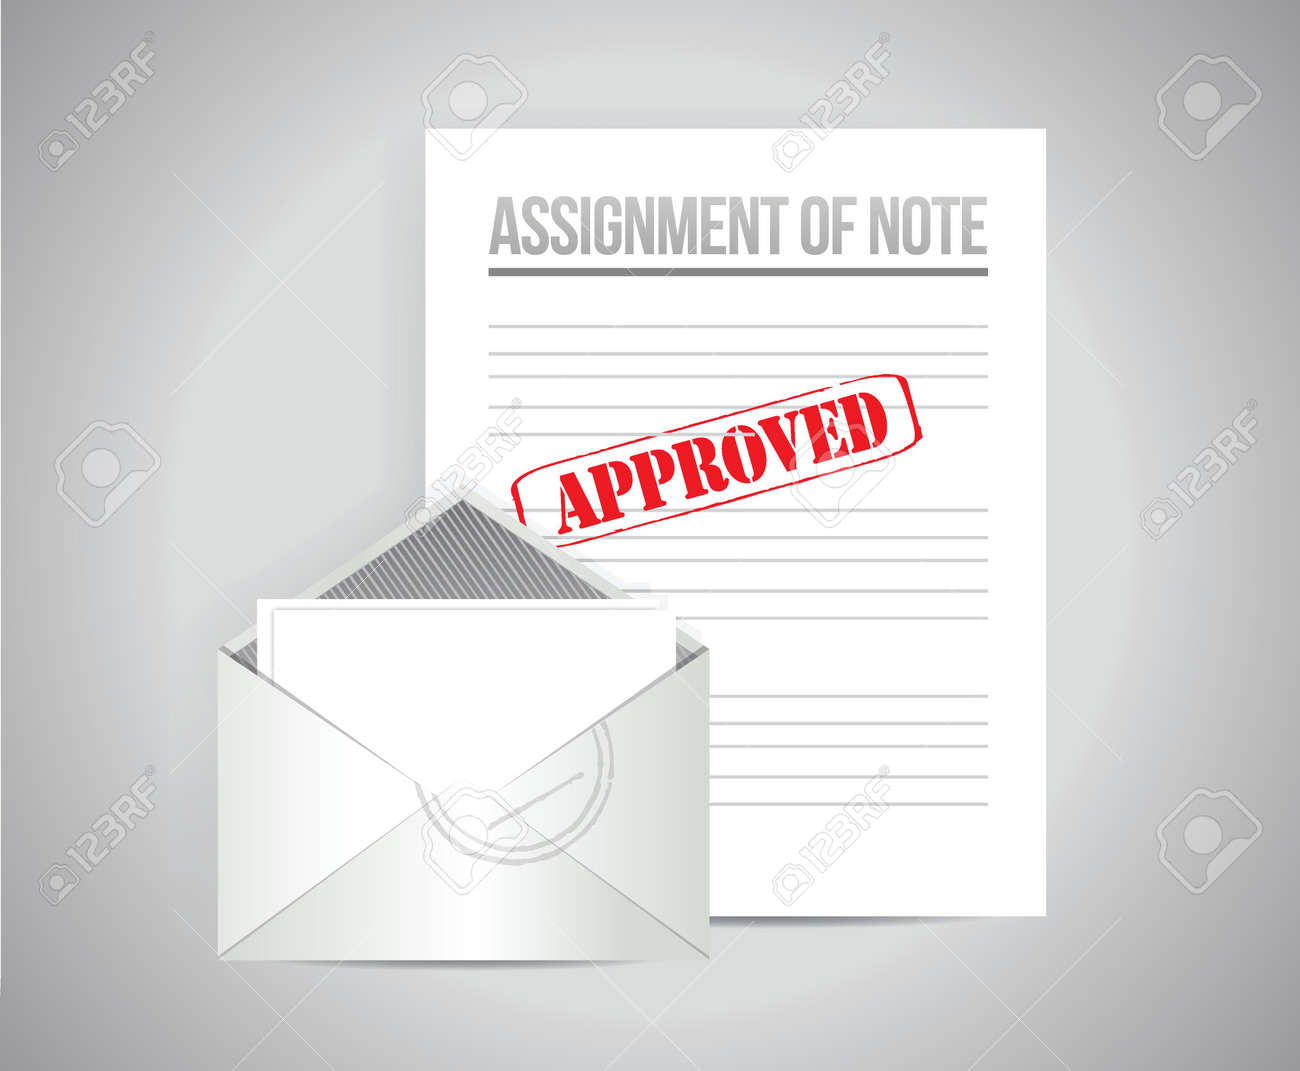 Assignment of note